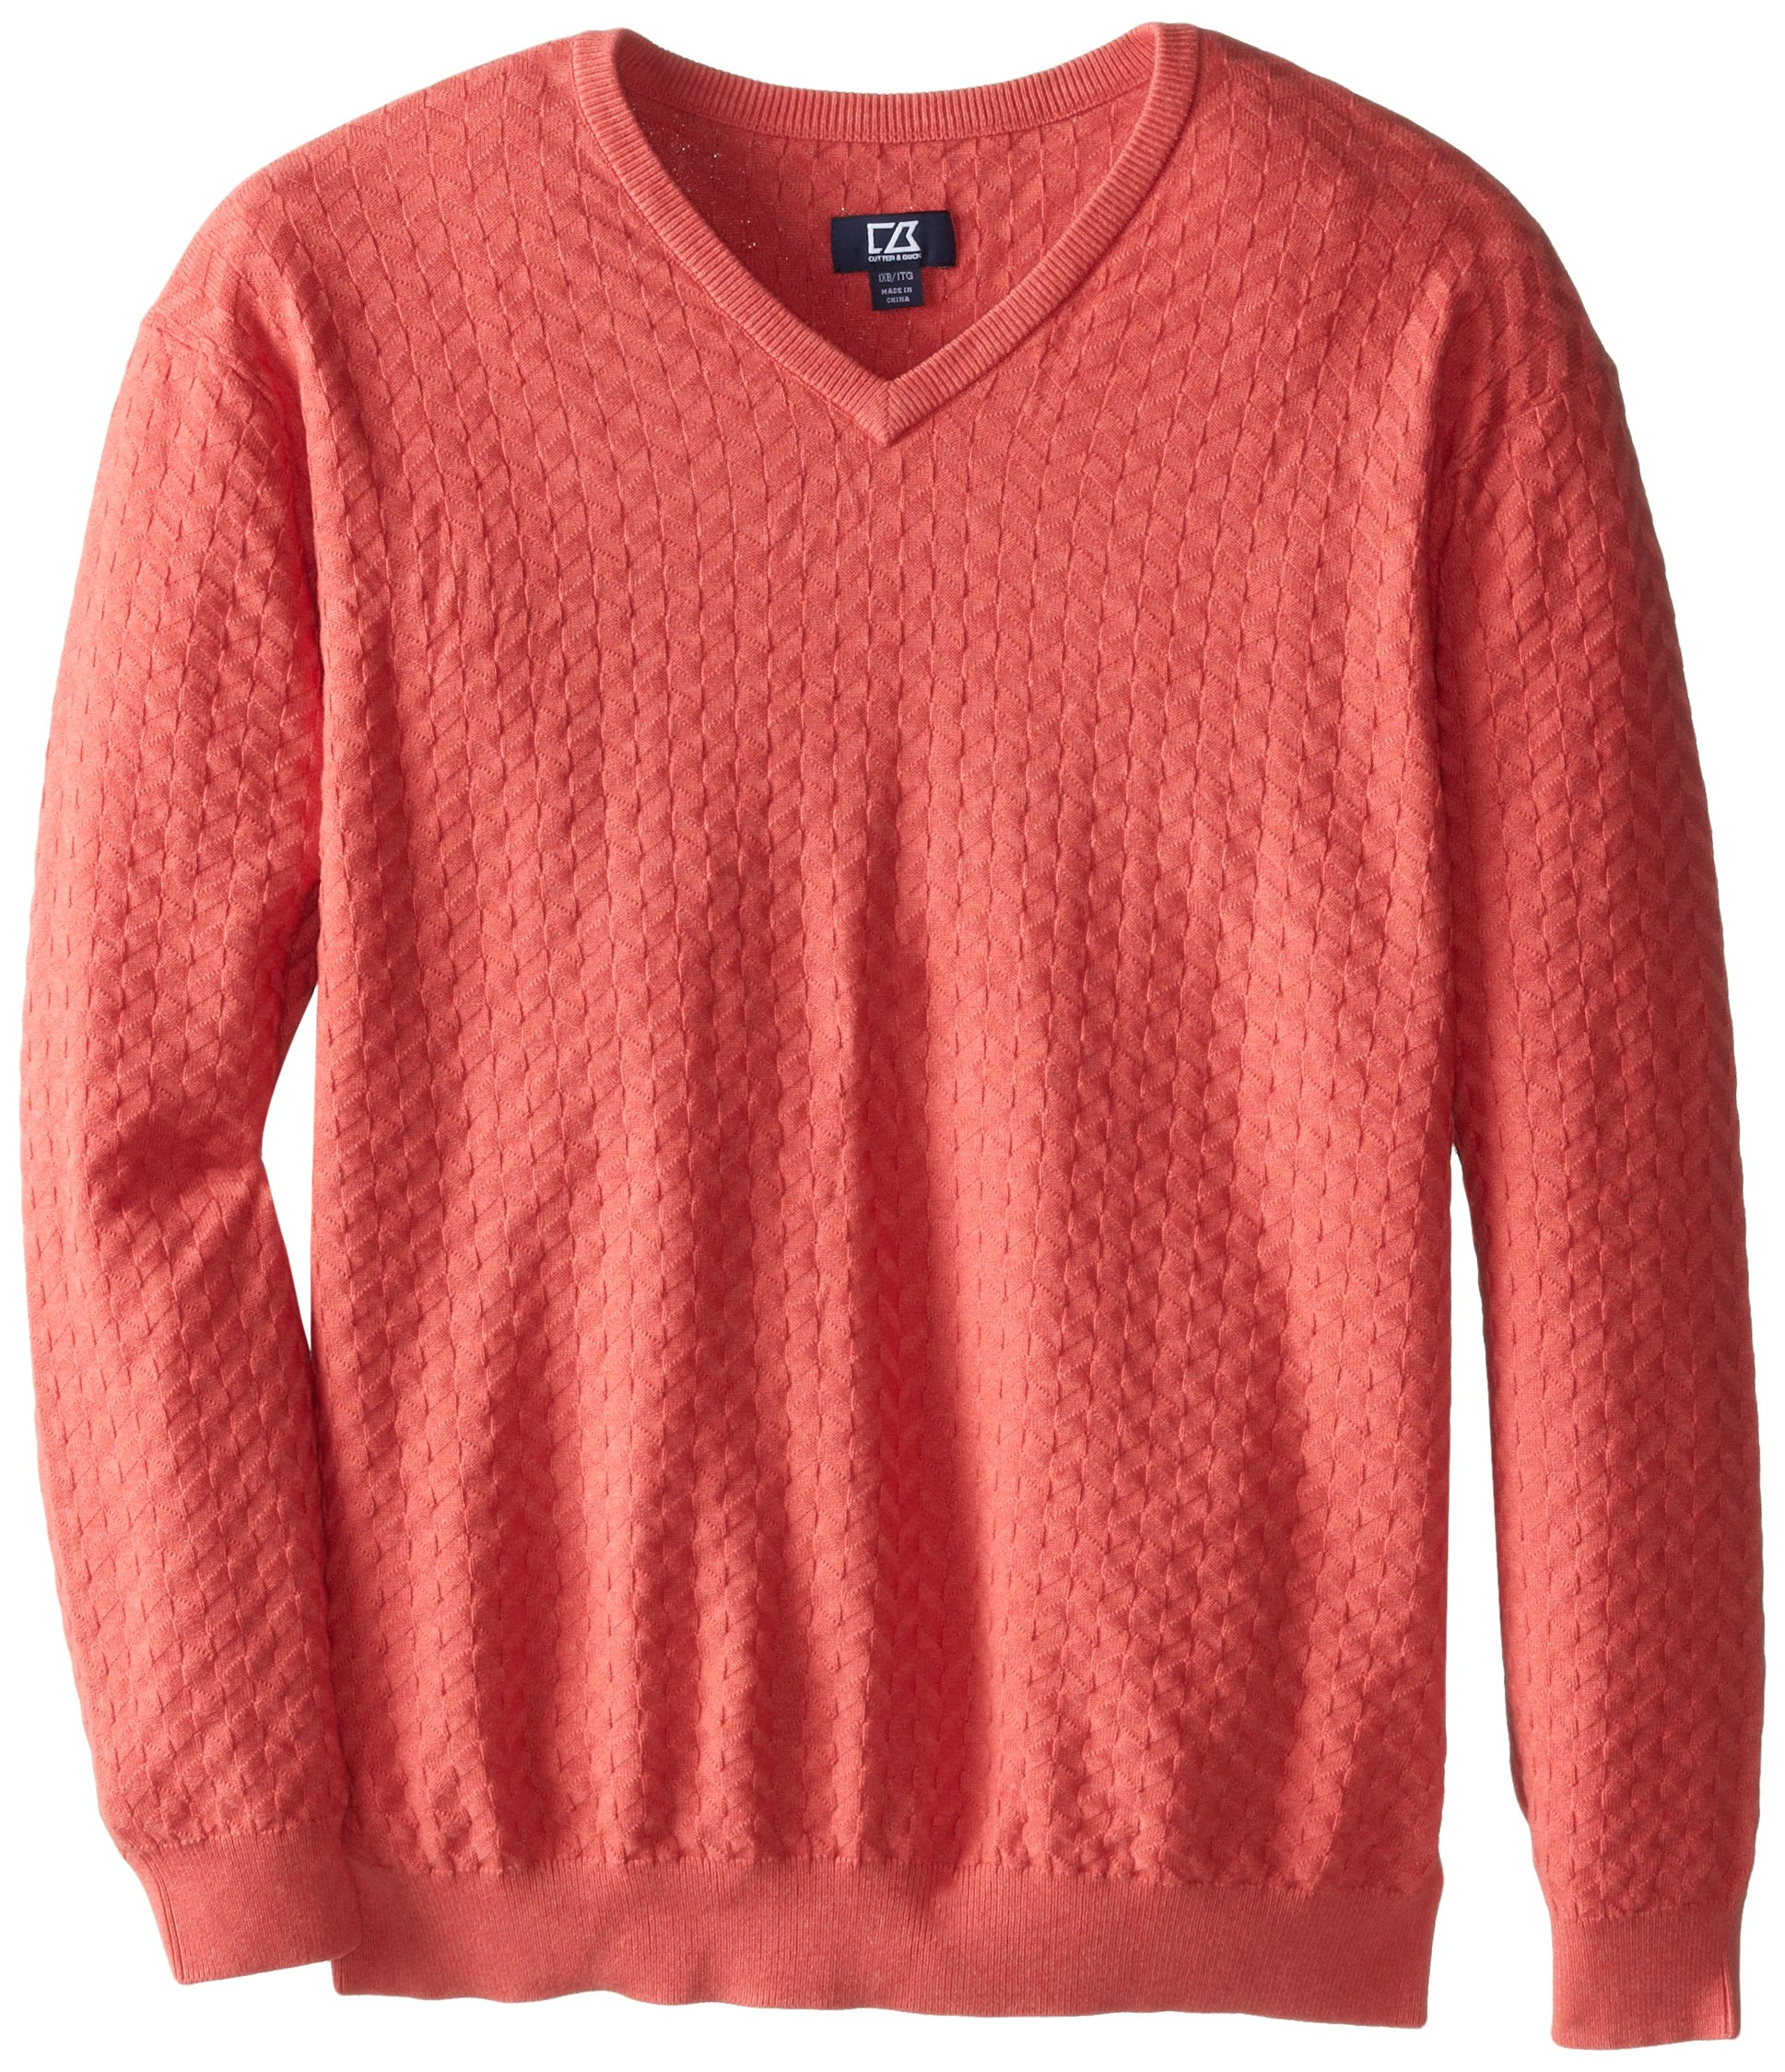 Cutter & Buck Men's Big-Tall Mitchell V-Neck Sweater, Fairmount, 3X/Tall